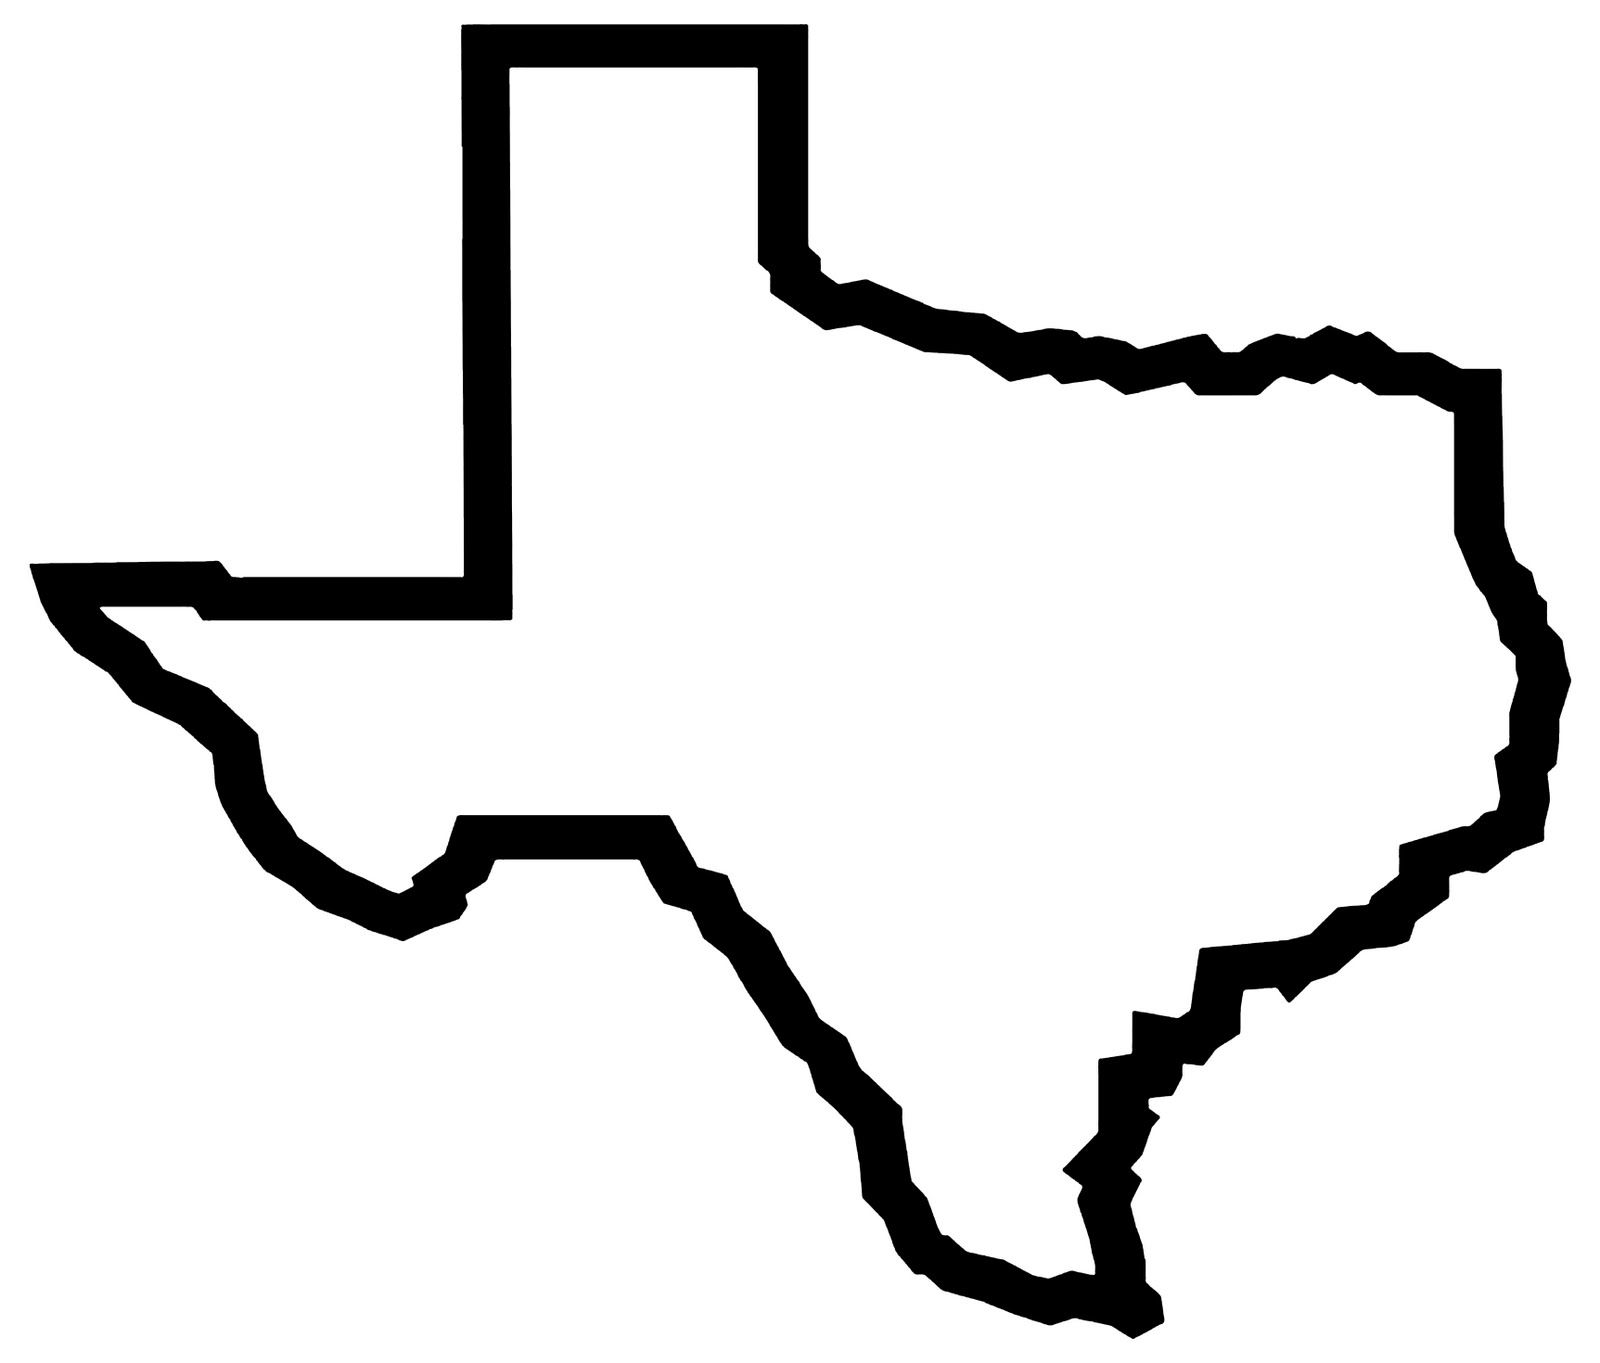 texas outline clipart free clipart images 3 [ 1600 x 1363 Pixel ]